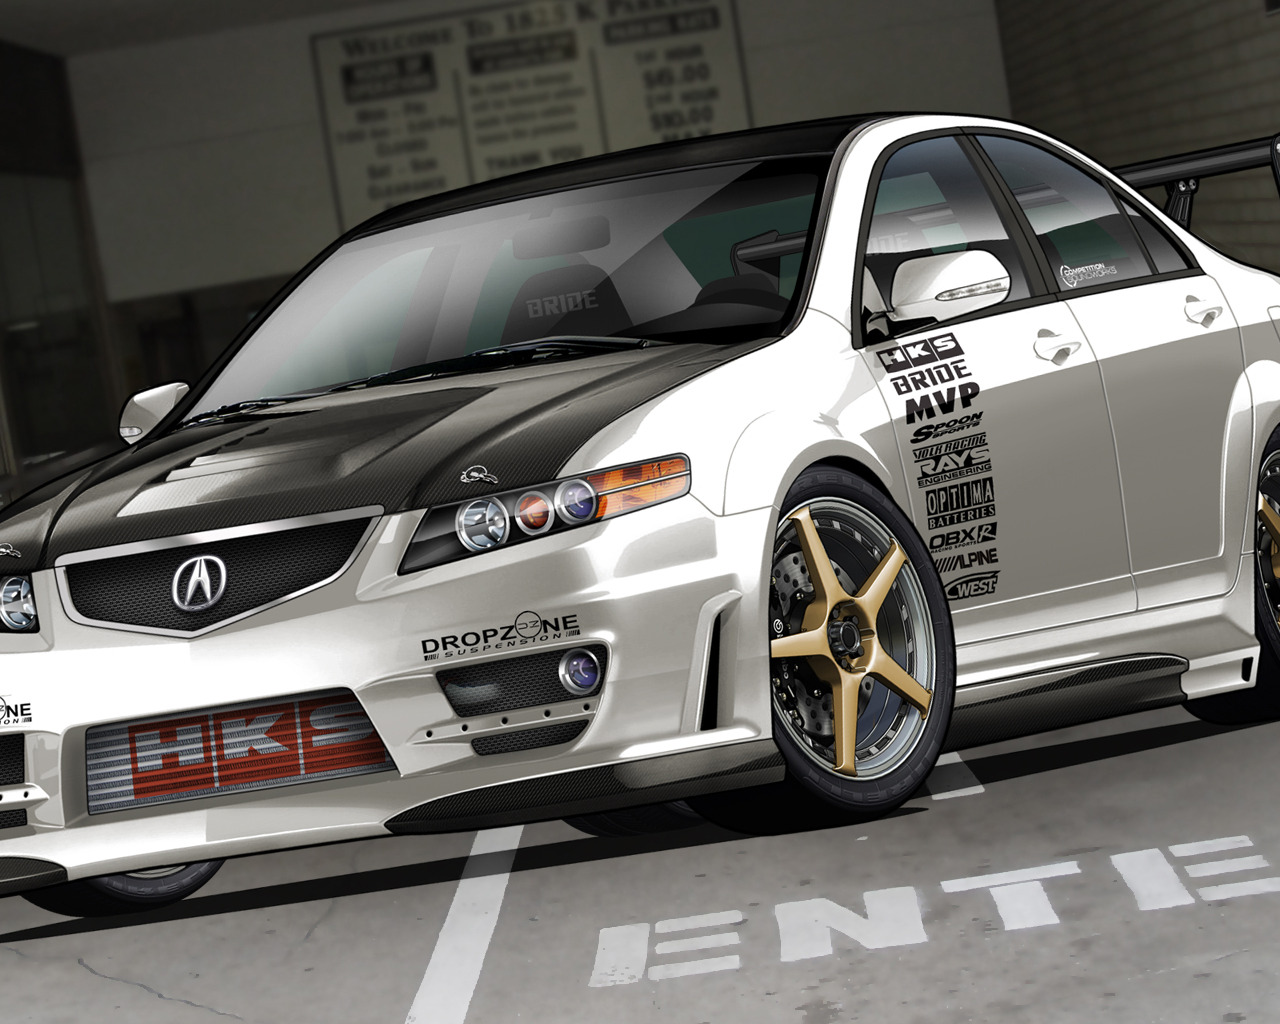 1280x1024 - Acura TSX Wallpapers 36